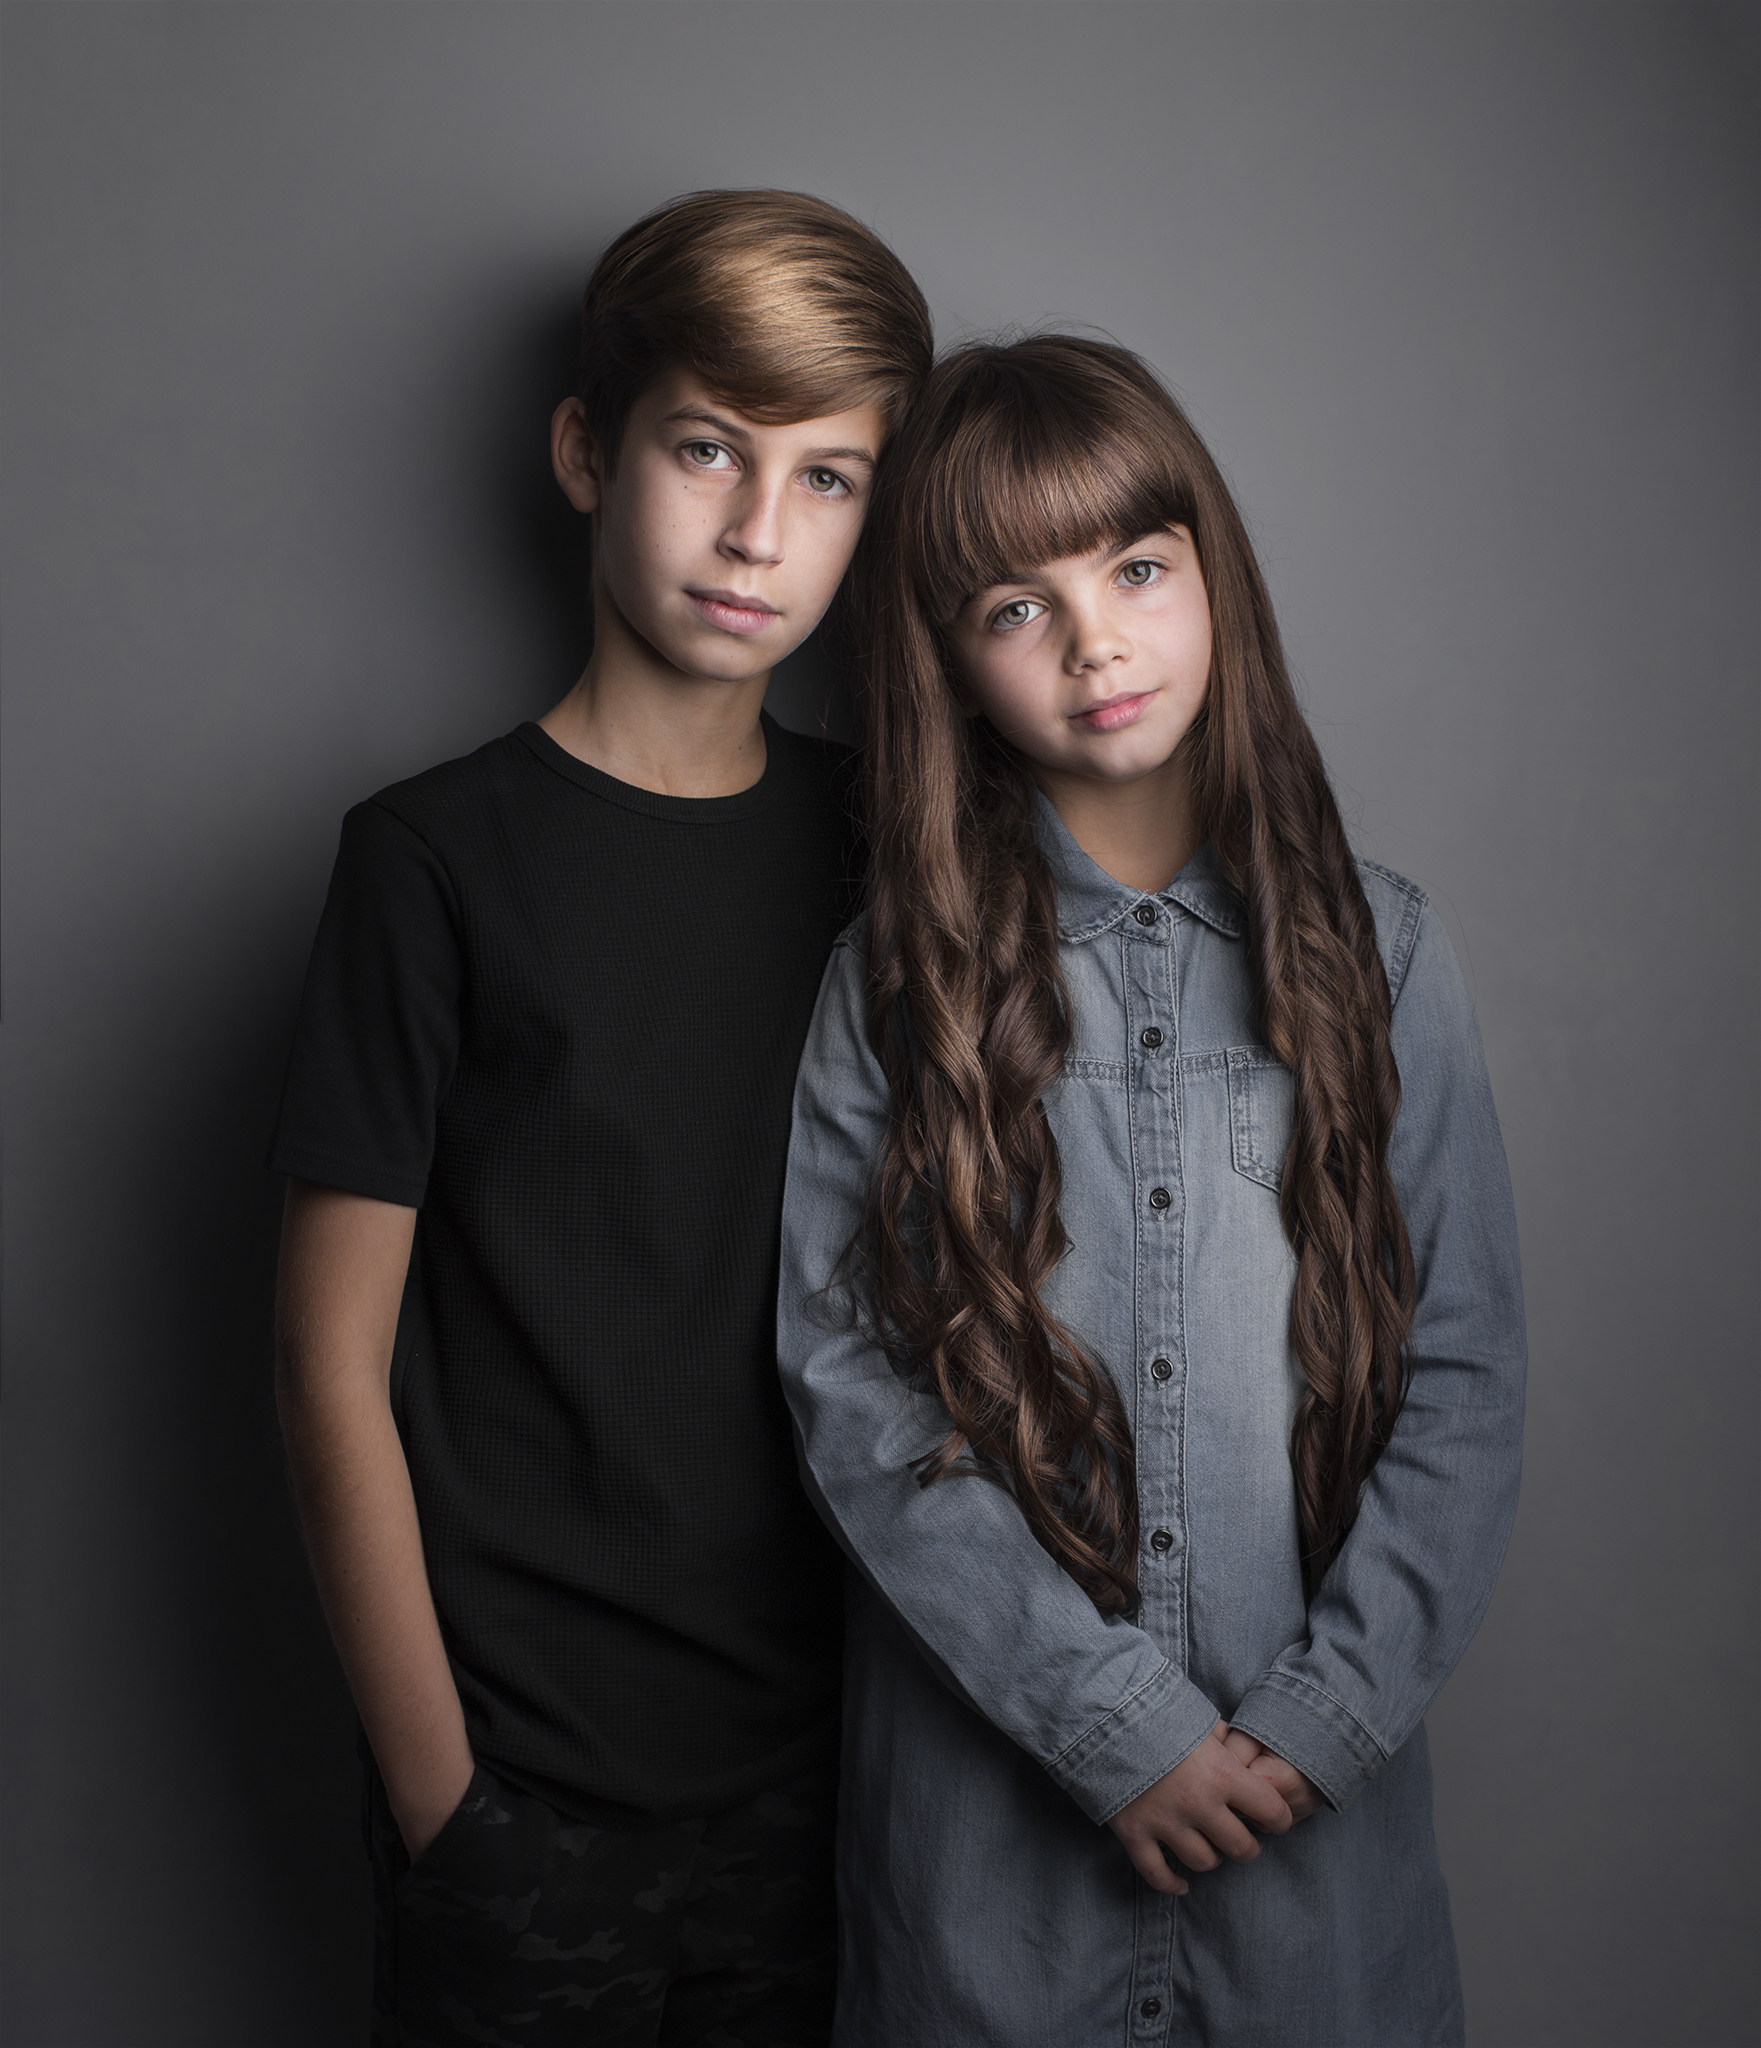 elizabethgfineartphotography_kingslangley_model_actor_chloe_alex1_family_portrait.jpg